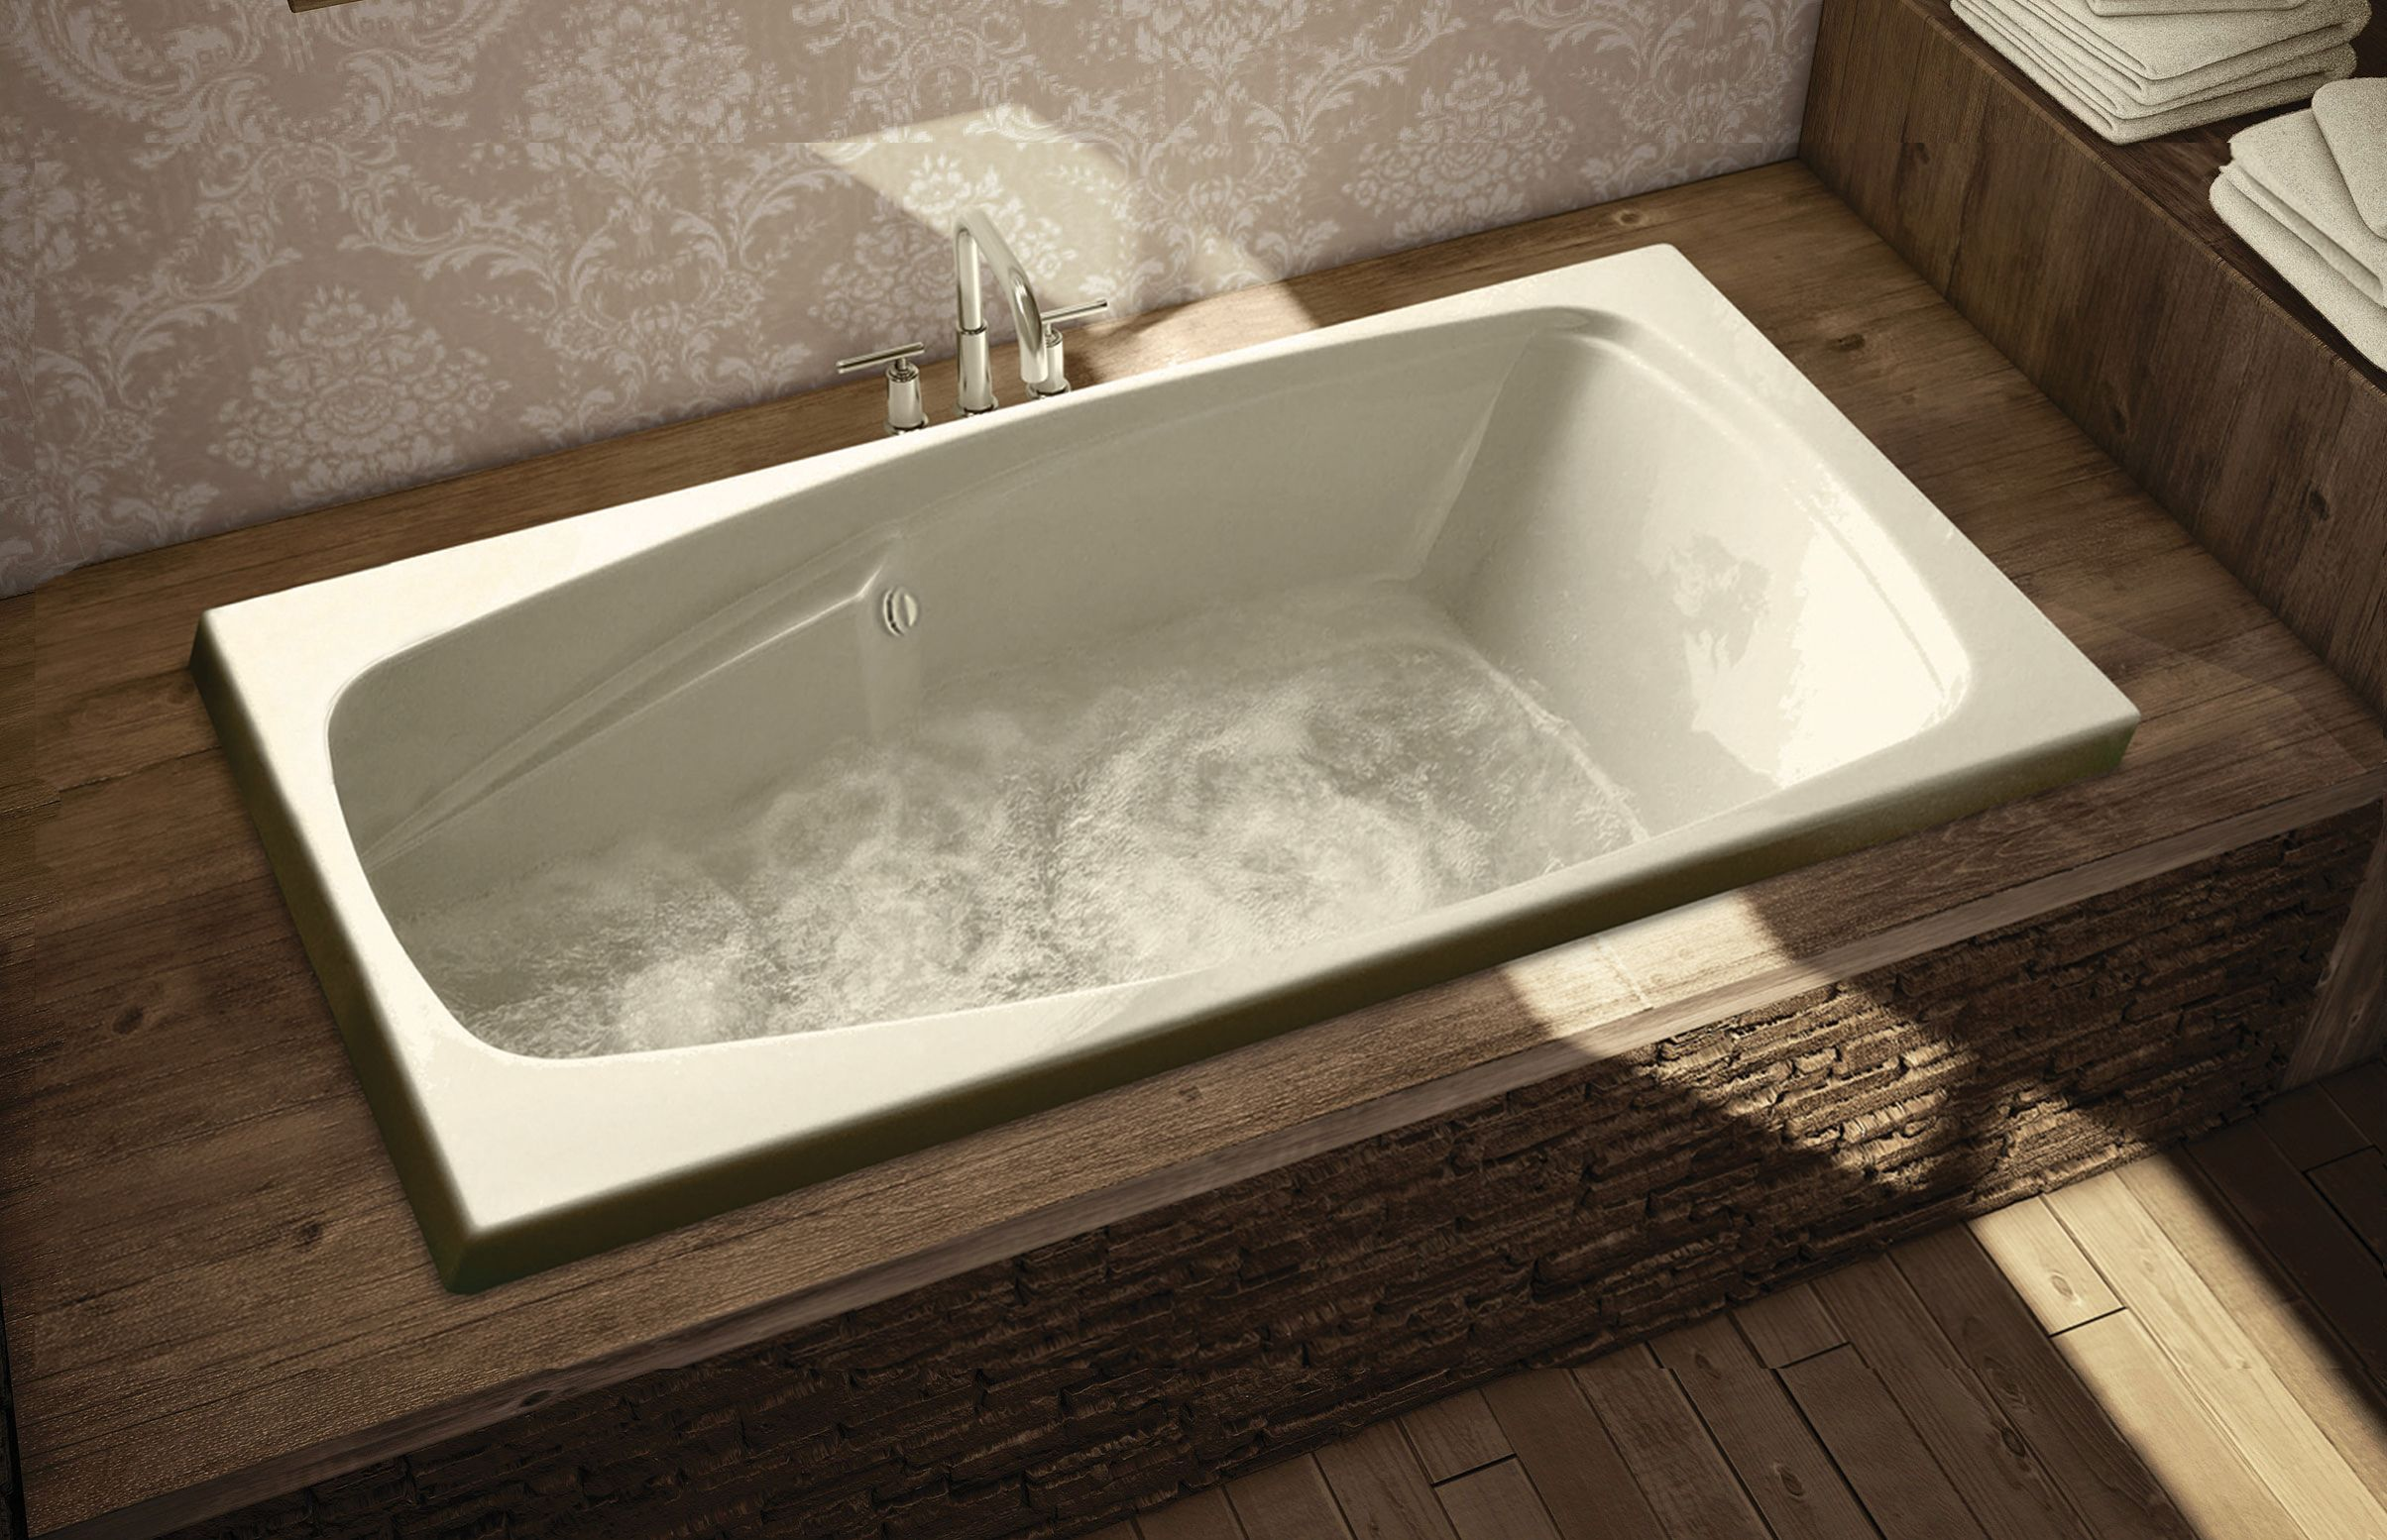 SIMPLICITE Alcove or Drop-in bathtub - MAAX Professional ...